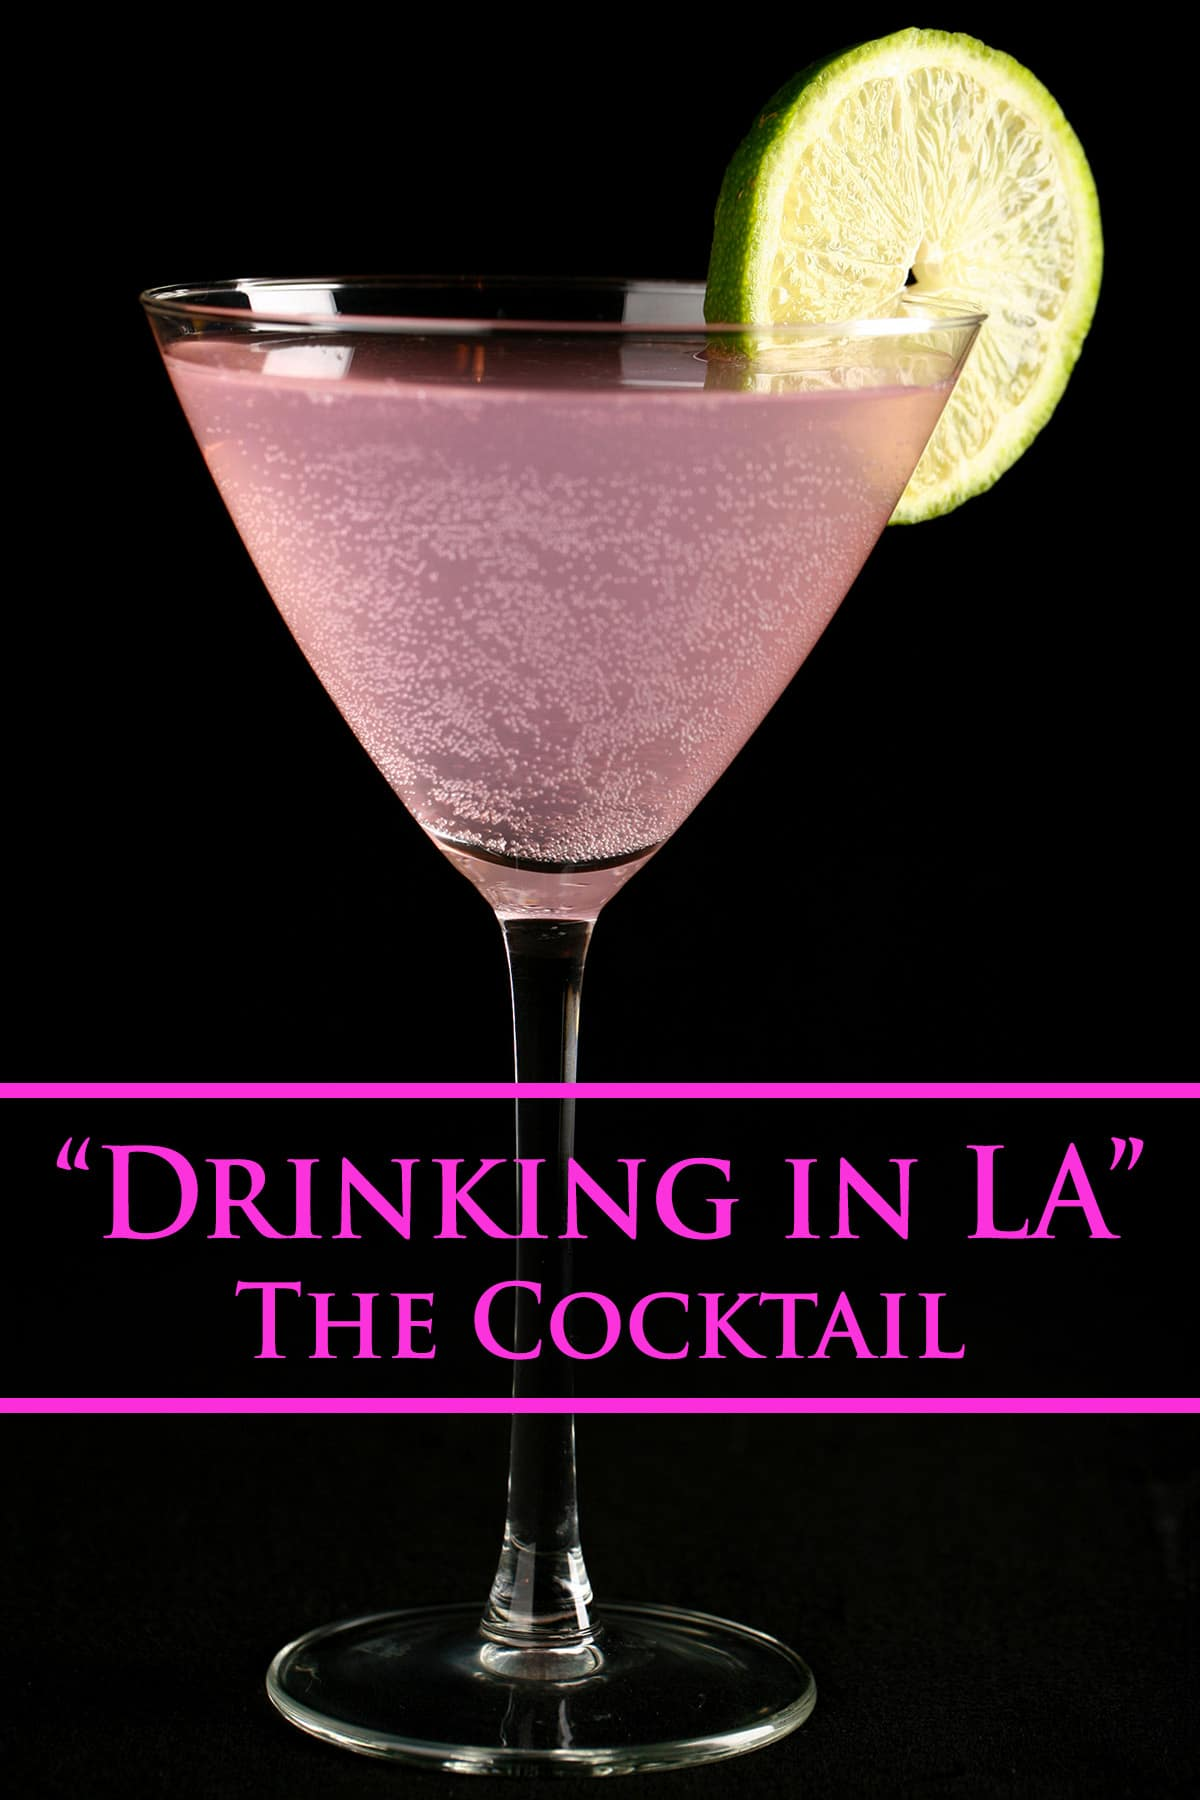 The Drinking In LA - a light pink fizzy cocktail in a martini cocktail glass. It is garnished with a slice of lime.